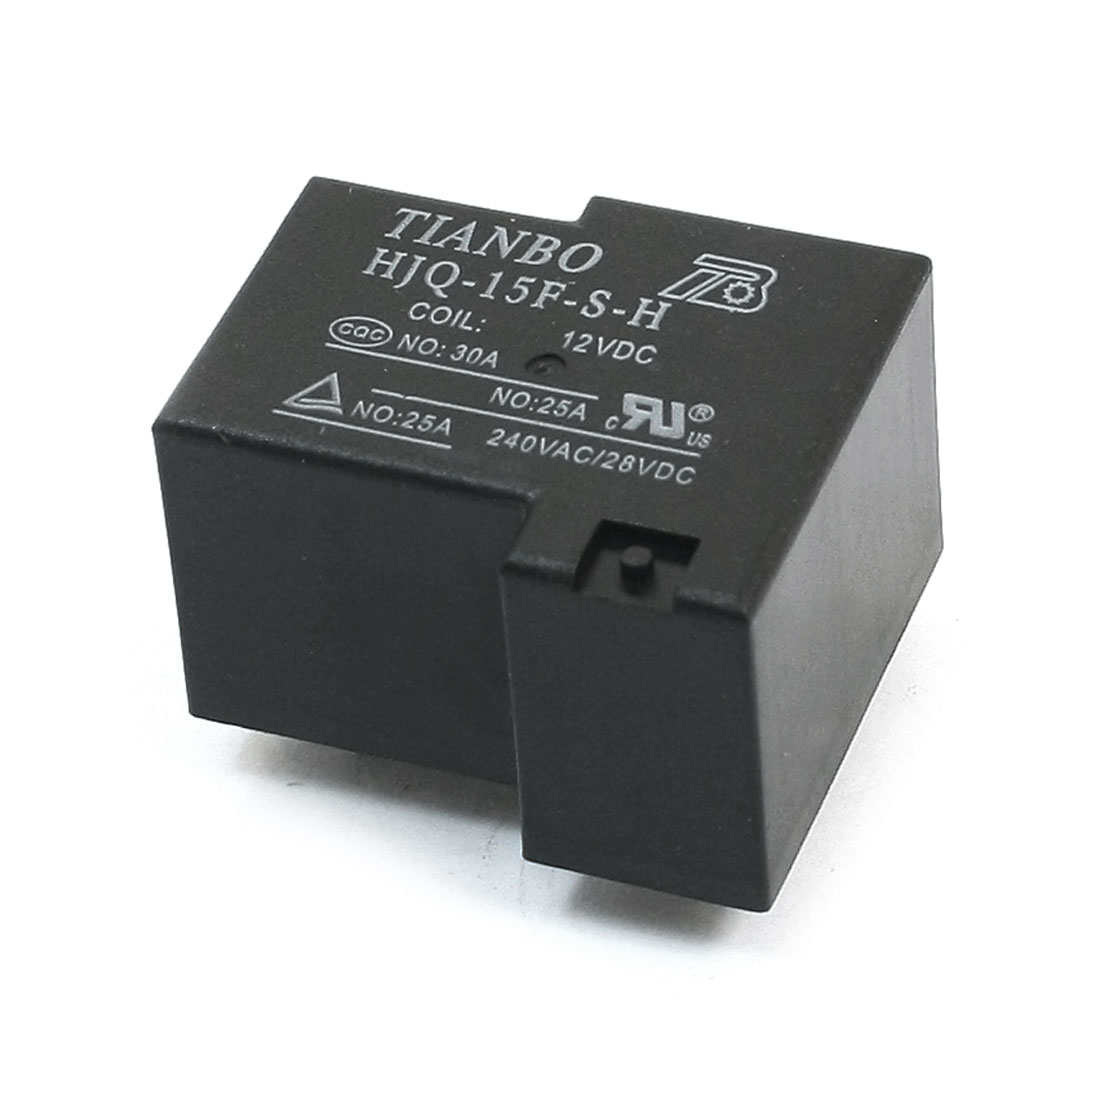 HJQ-15F-S-H-12VDC DC 12V 5-Pin SPDT 1NO 1NC Plug in Type PCB Surface Mounting General Purpose Coil Power Relay